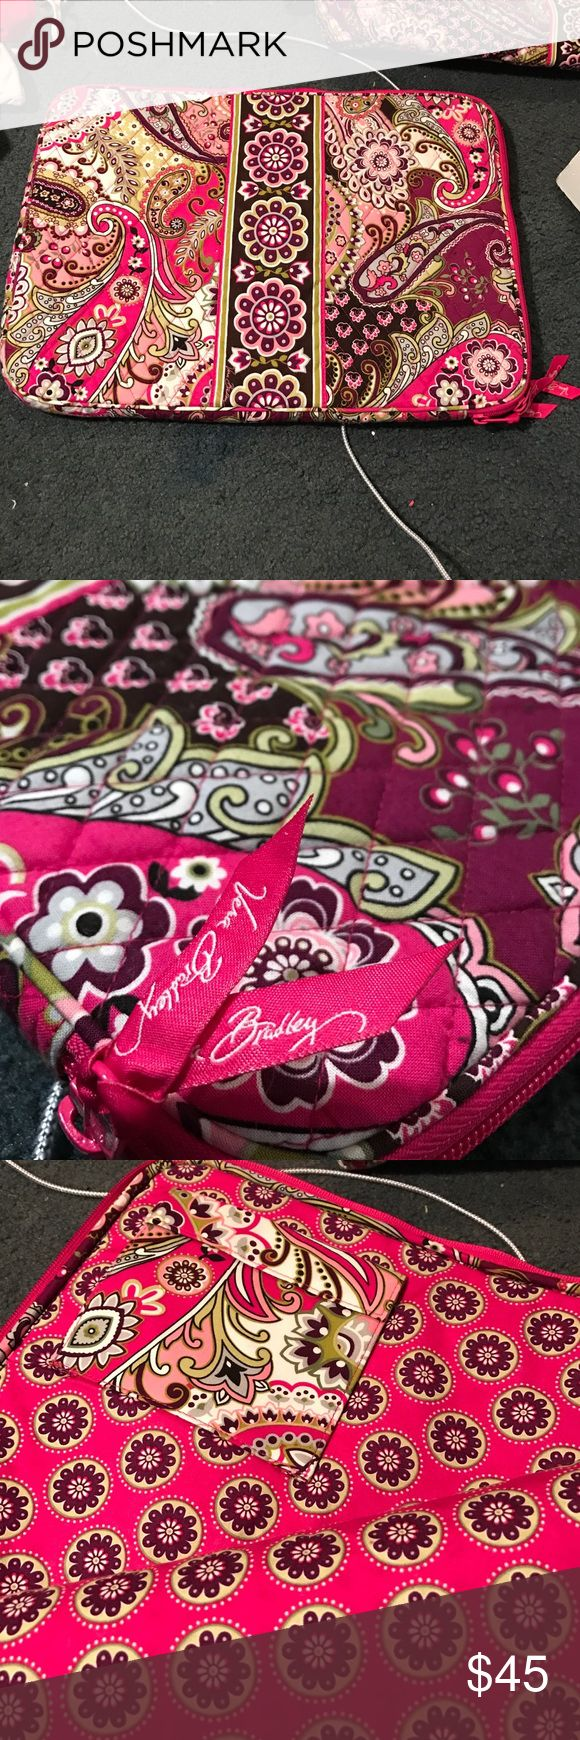 "Vera Bradley quilted laptop bag - very berry This quilted Vera Bradley laptop case fits a 15"" laptop and includes an inner pocket that can fit a flash drive, external hard drive, or a laptop charger! This is in the Very Berry pattern and pairs with the tote bag that i also have listed! Never used! Vera Bradley Bags Laptop Bags"